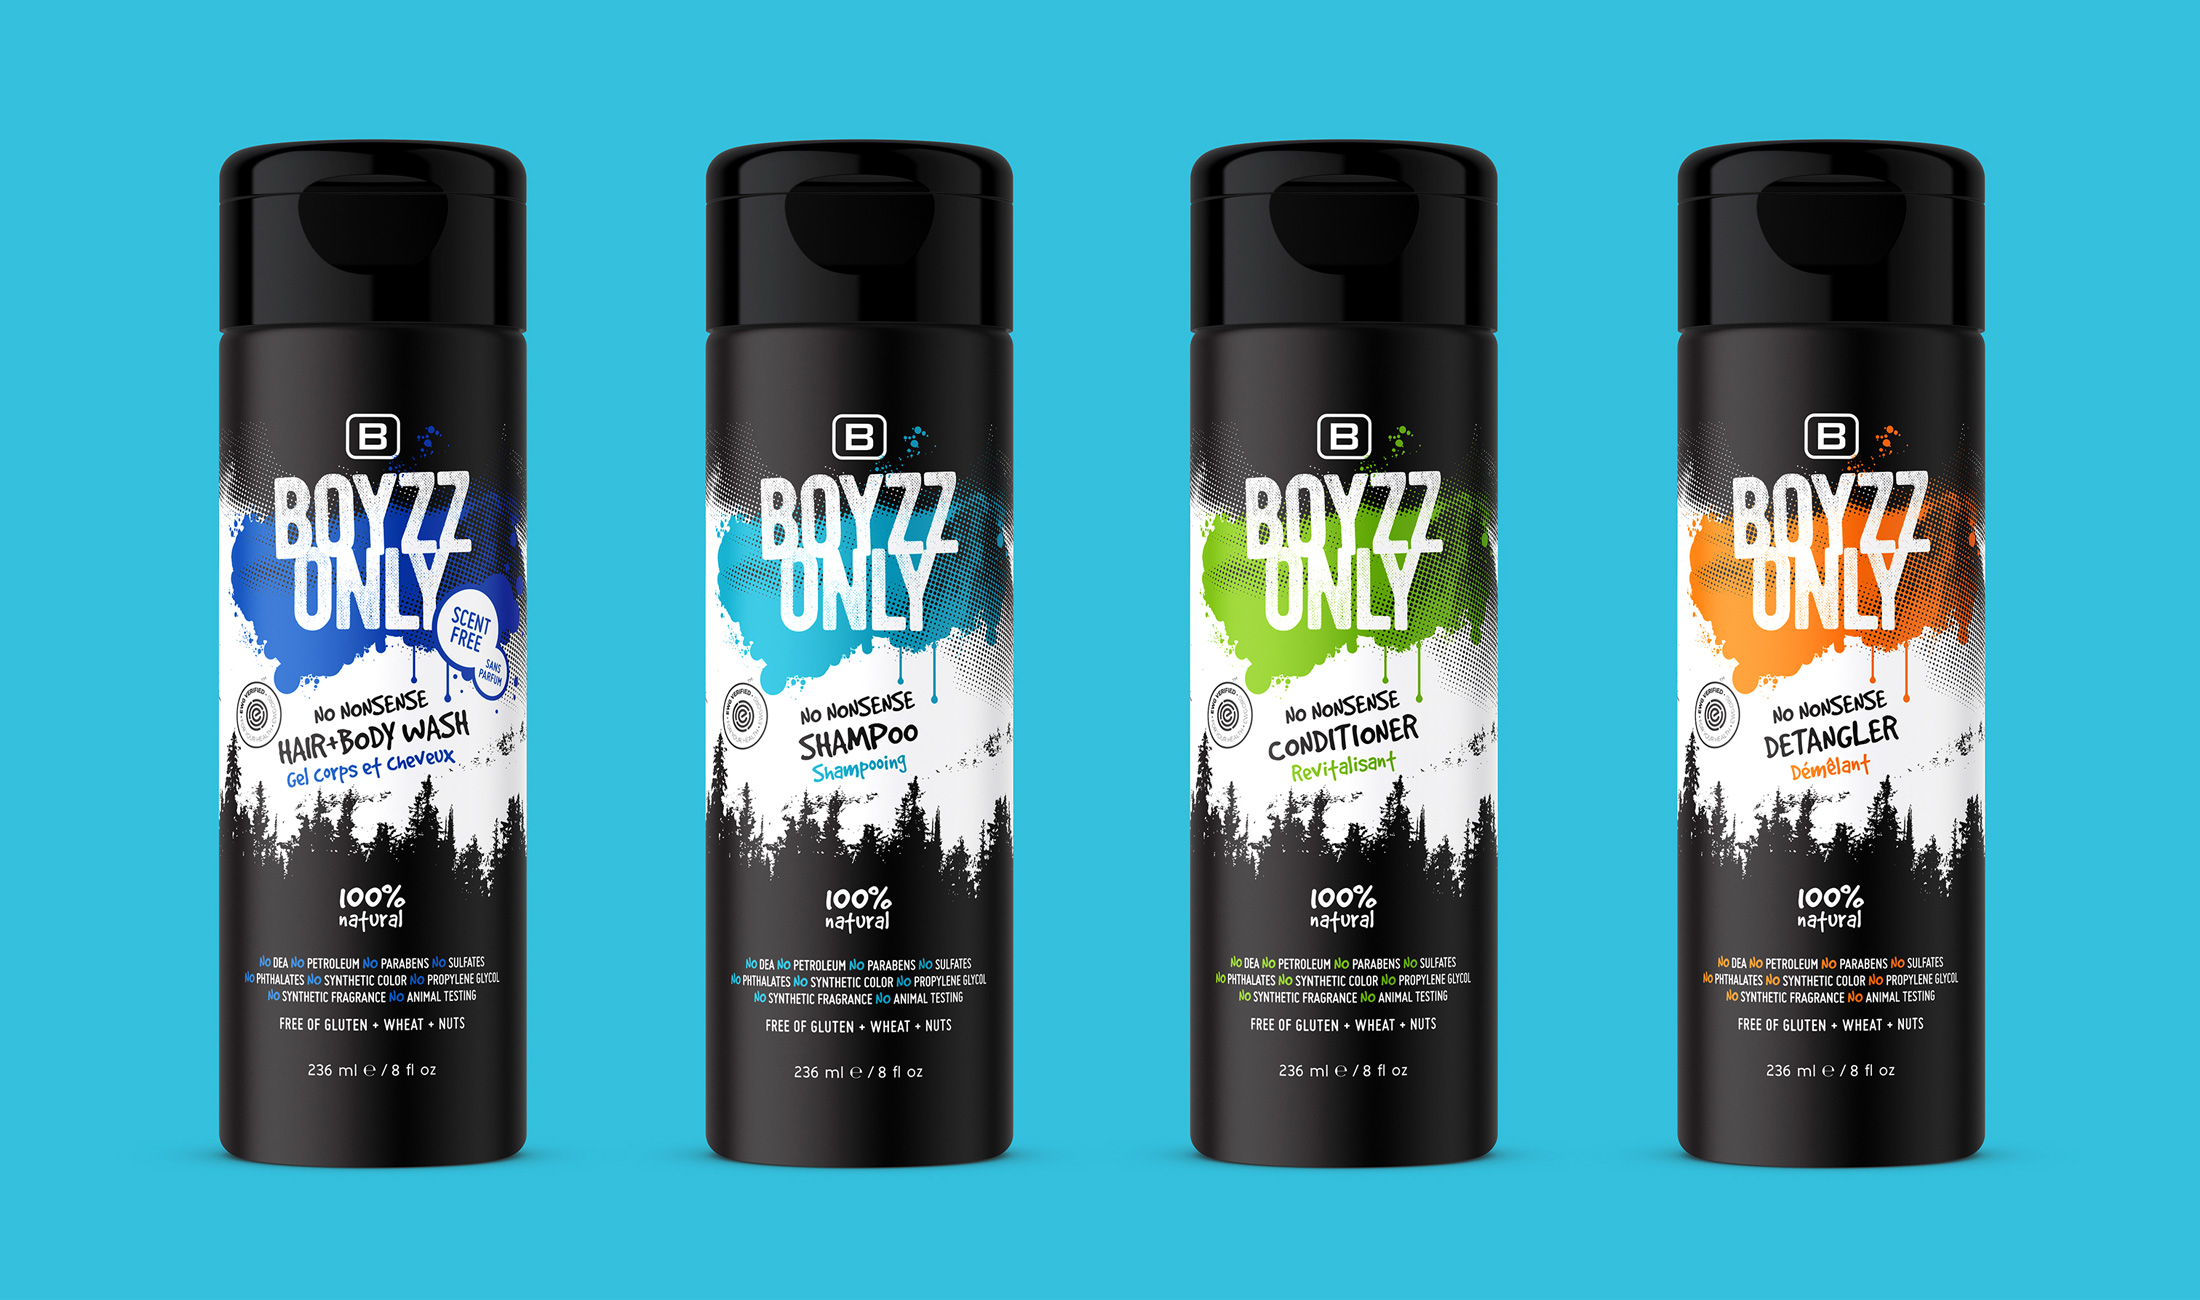 Full line-up of the Boyzz Only product packaging designs